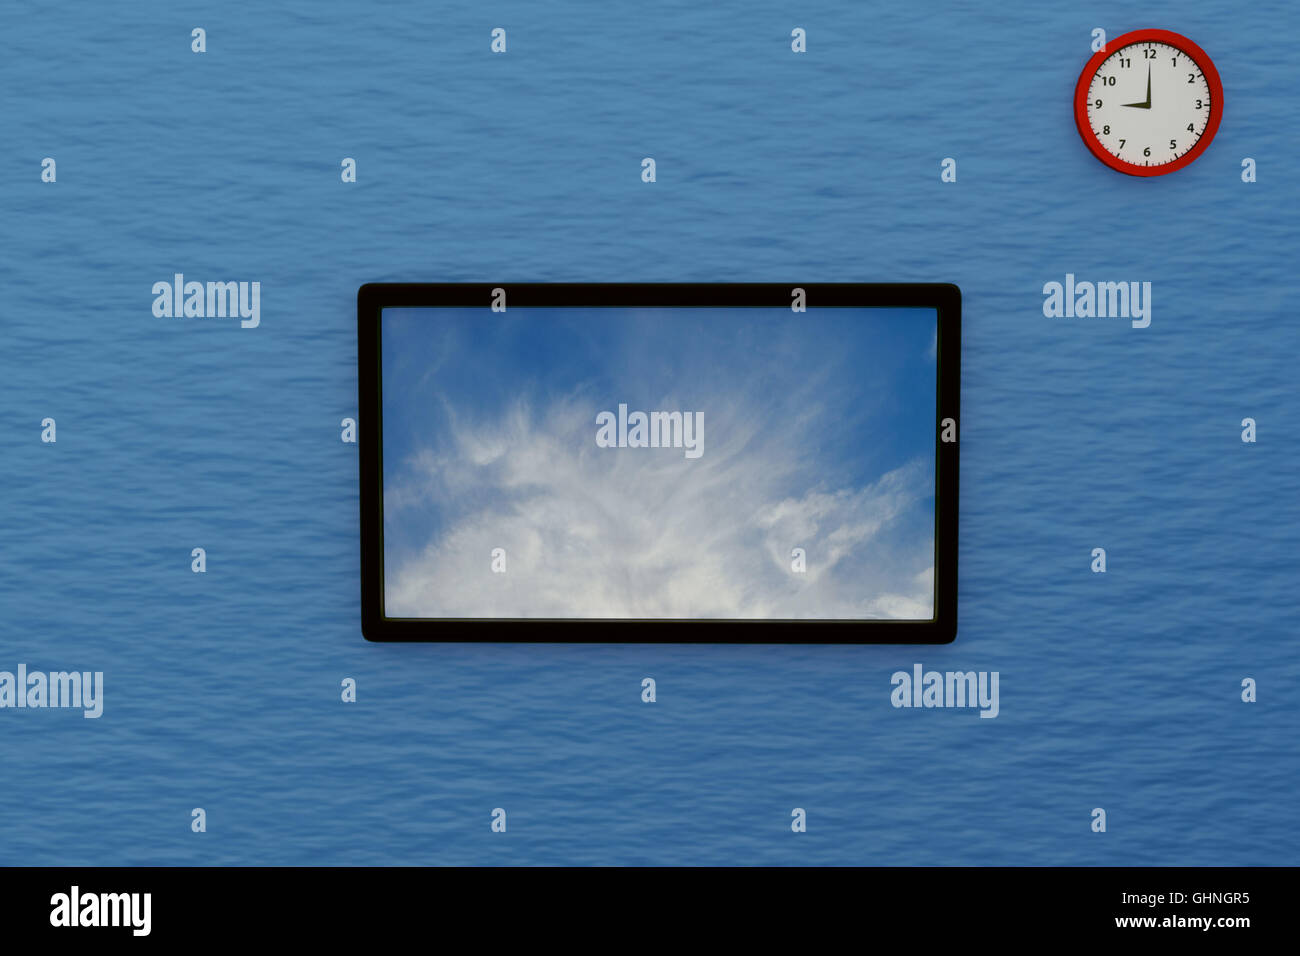 Fernseher Wand Hintergrund Tv Monitor Wall Stockfotos And Tv Monitor Wall Bilder Alamy